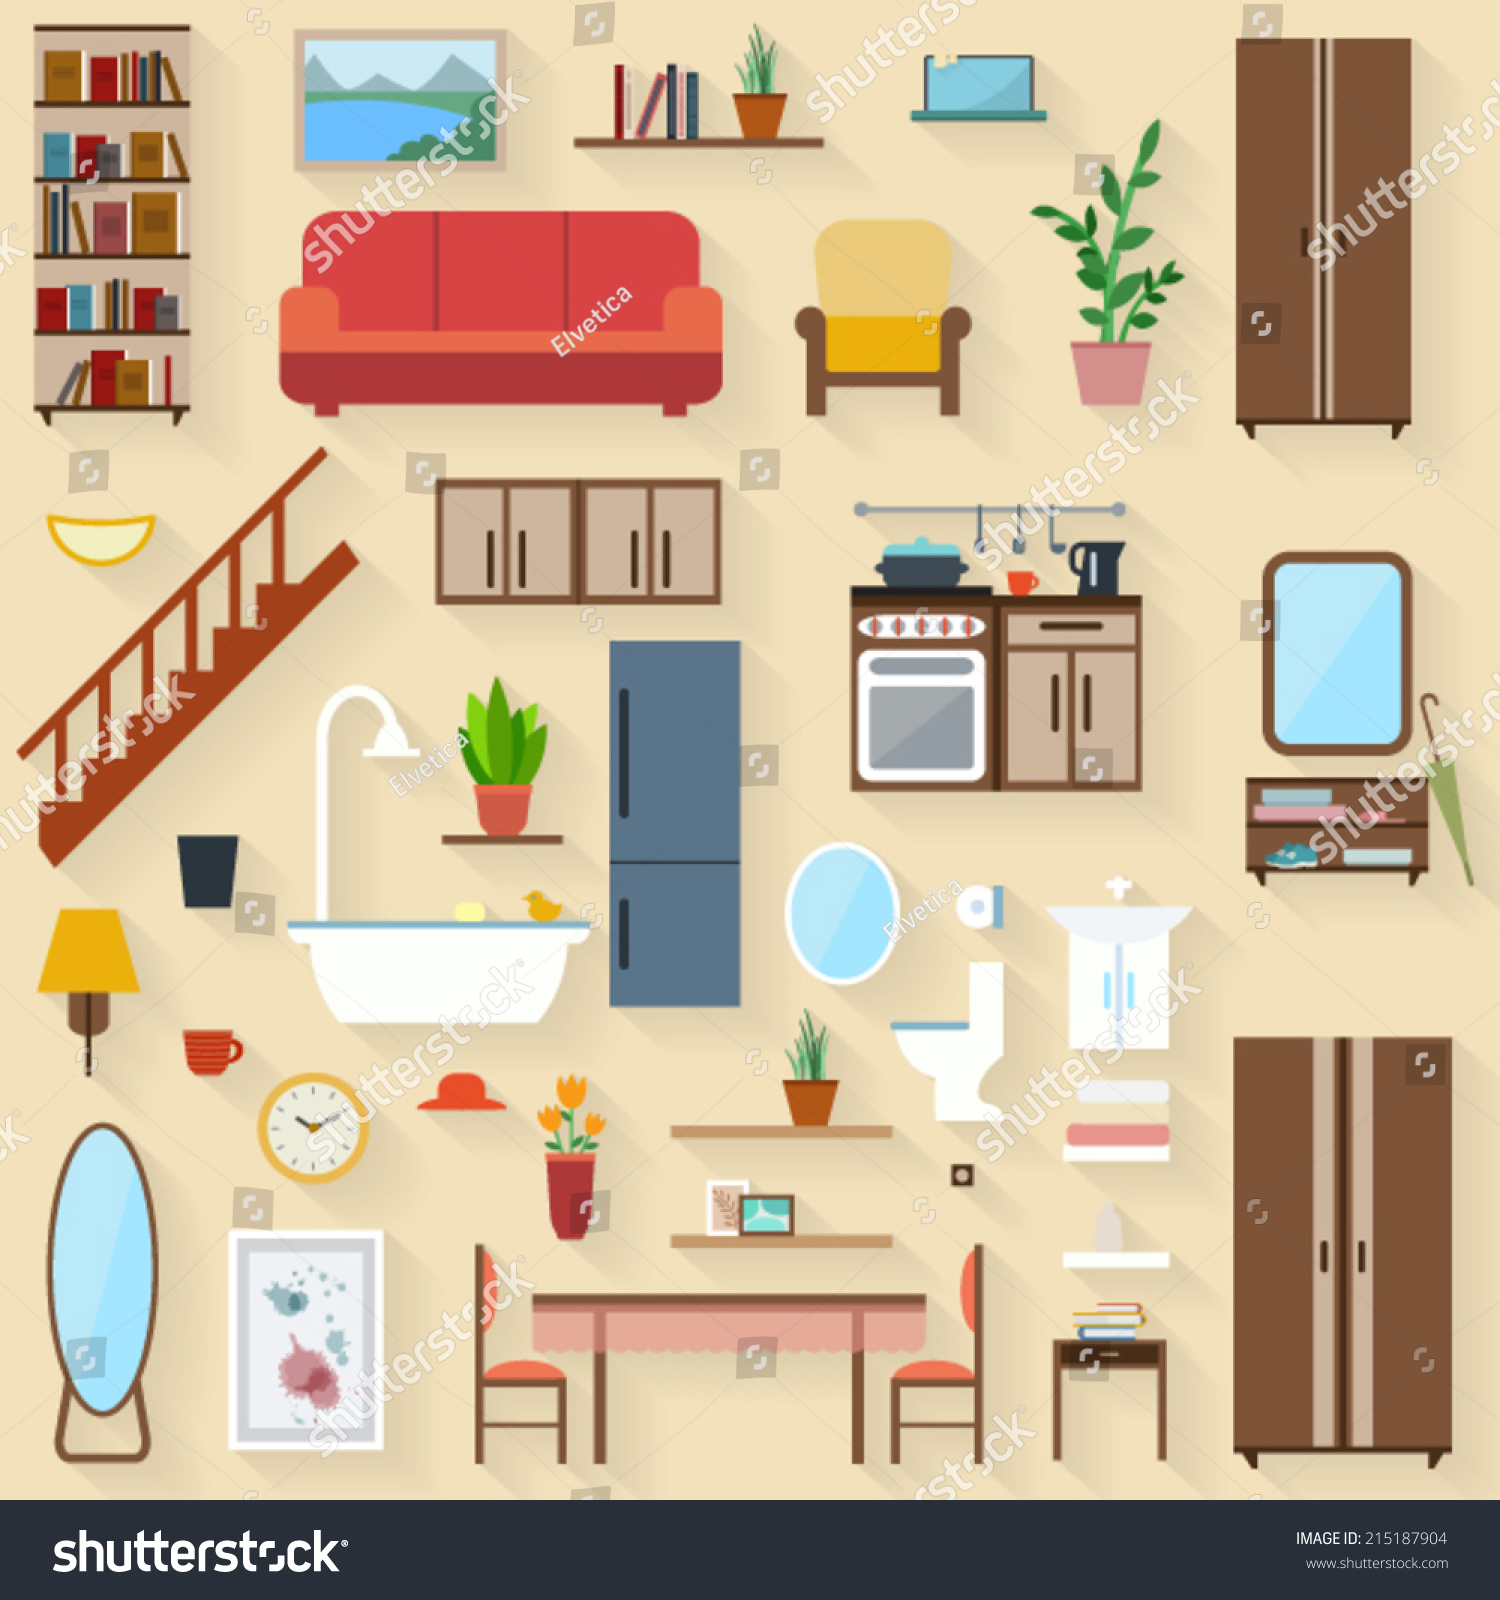 Furniture set for rooms of house flat style vector illustration